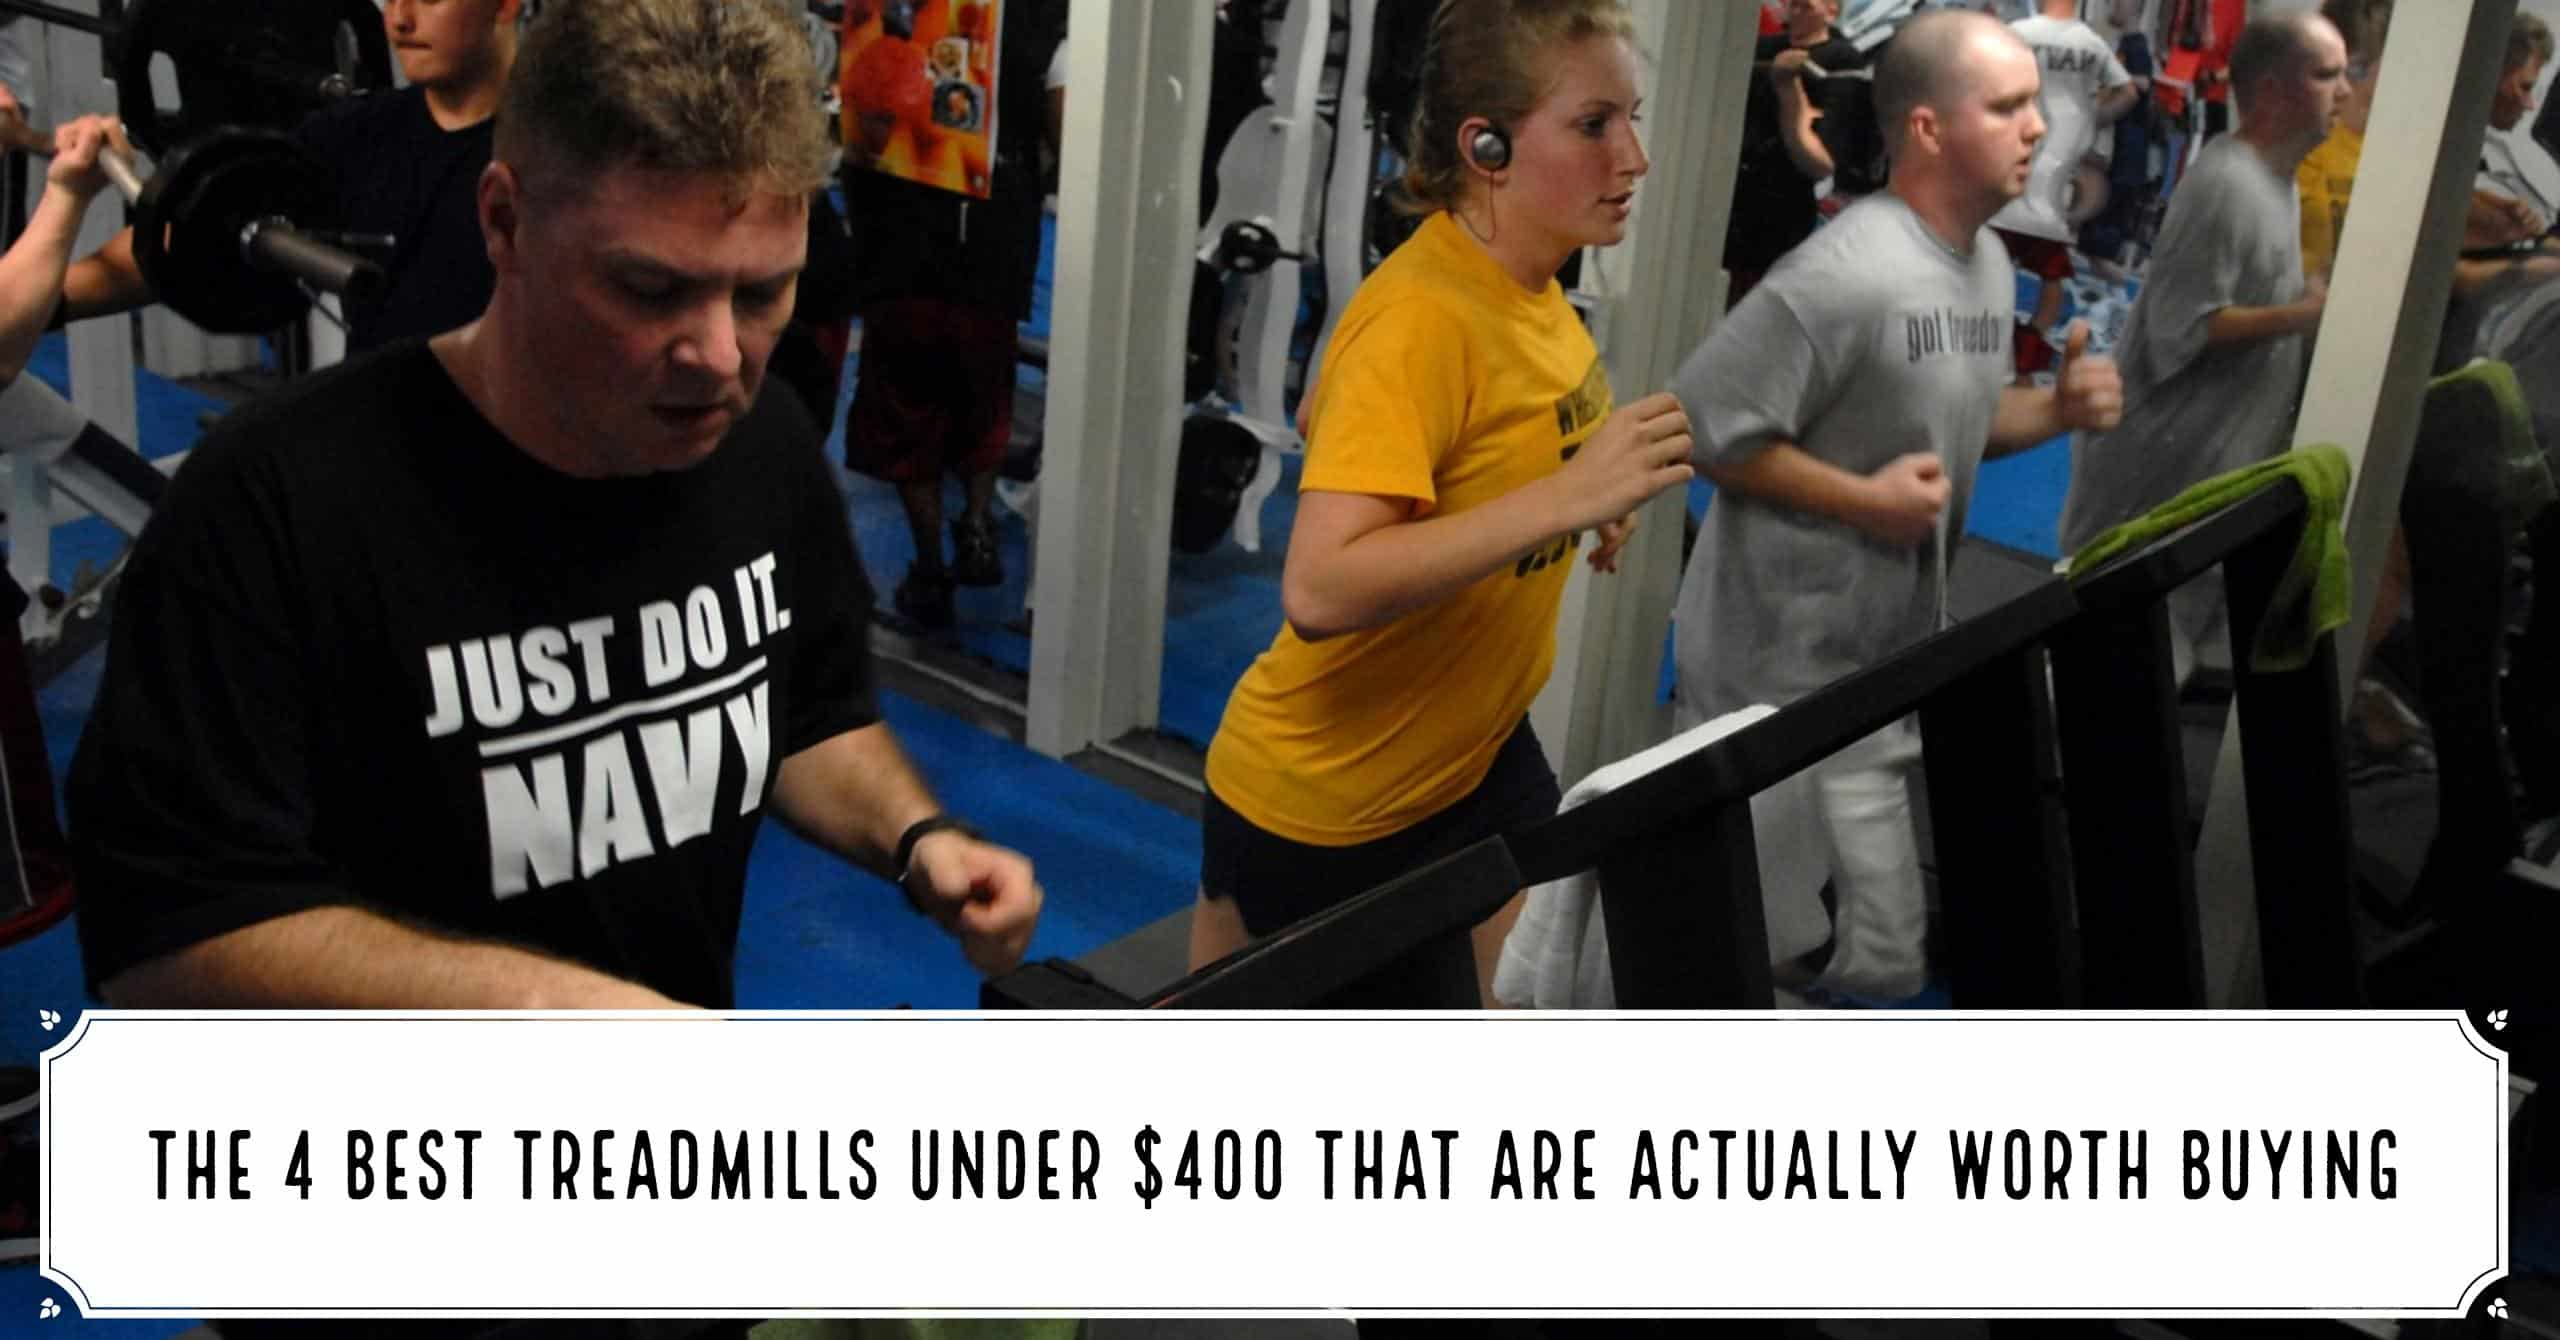 Being frugal AND purchasing must-have exercise equipment is pretty tough. Here are the 4 best treadmills under $400 that are actually worth buying.